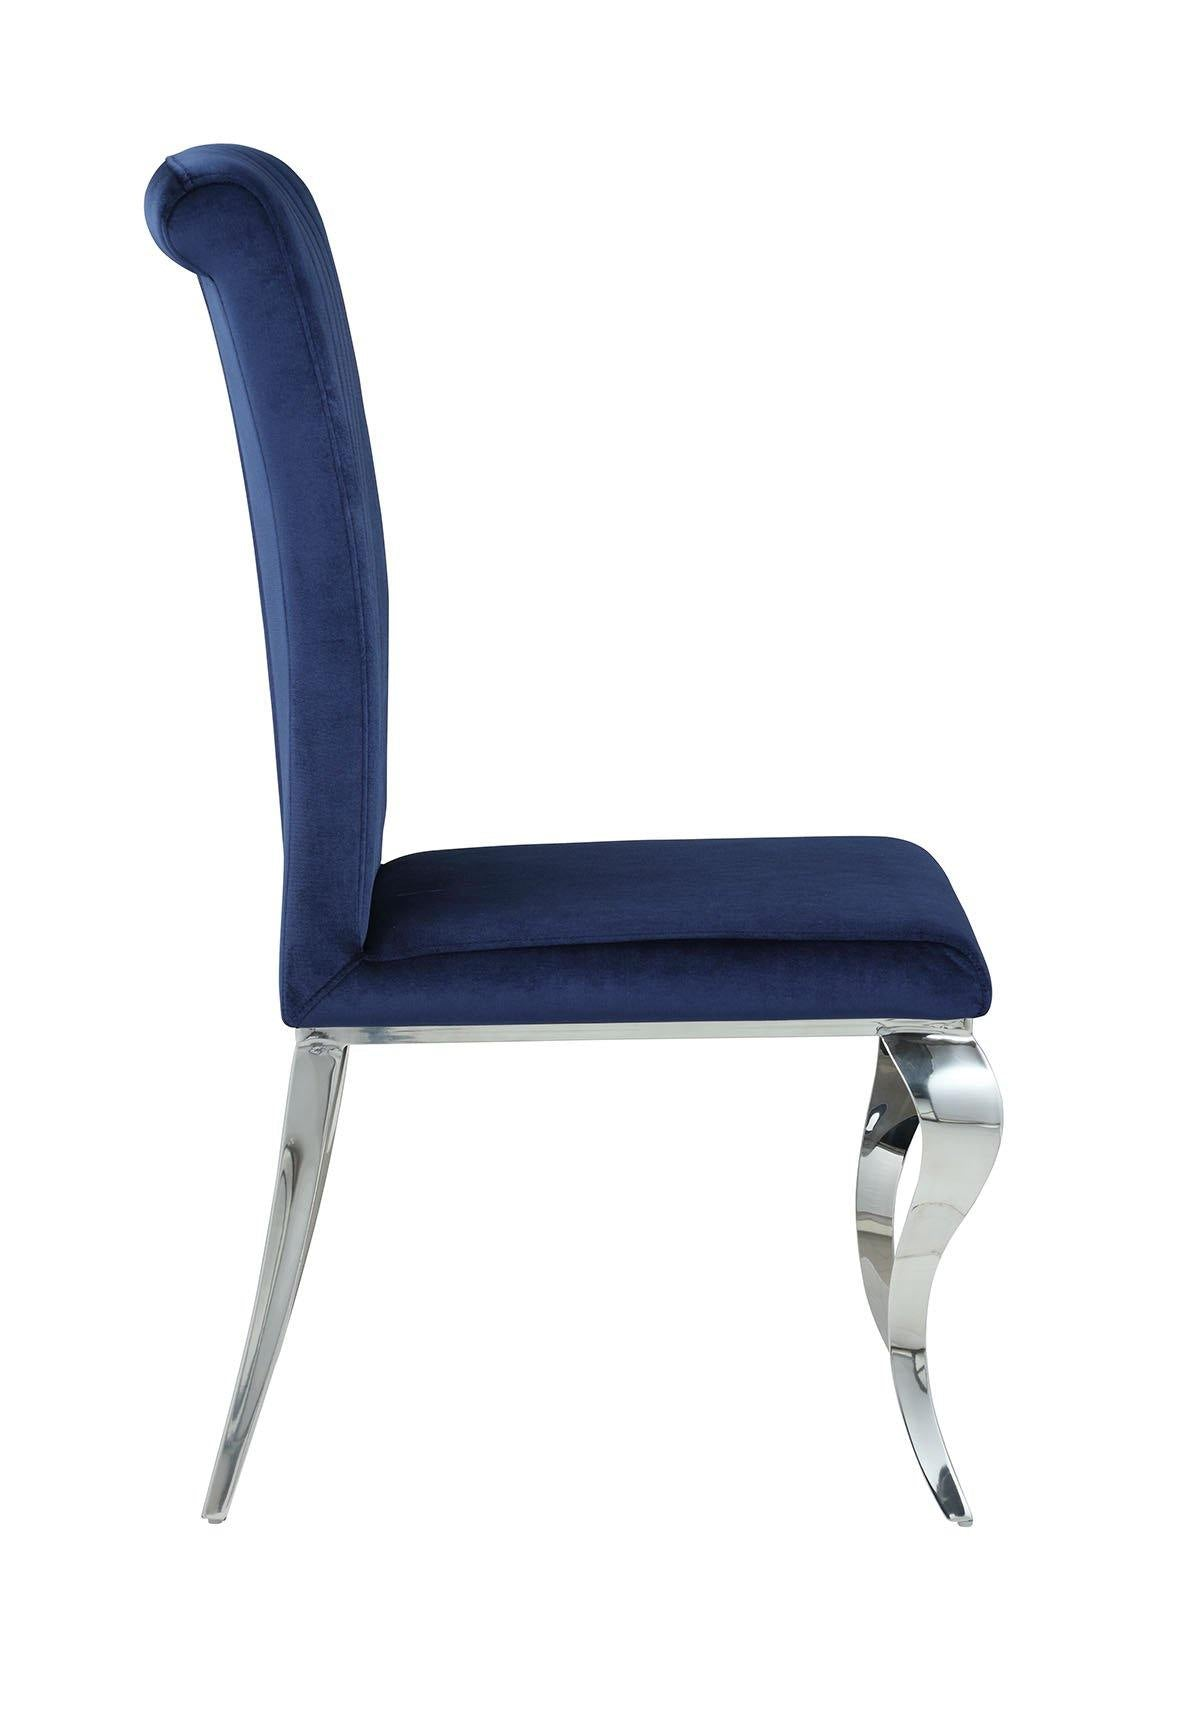 Dining chair 105077 Ink blue Hollywood Glam Dining Chair1 By coaster - sofafair.com